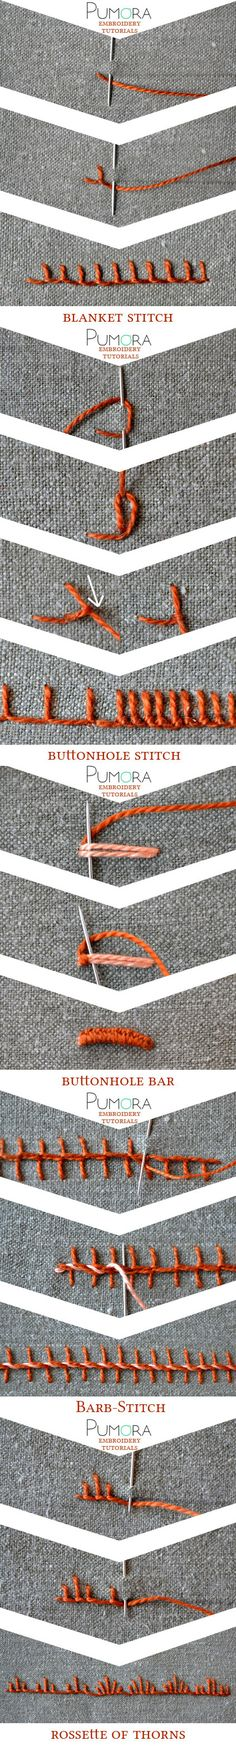 embroidery tutorials: blanket stitch with variations broderie, sticken, ricamo, bordado